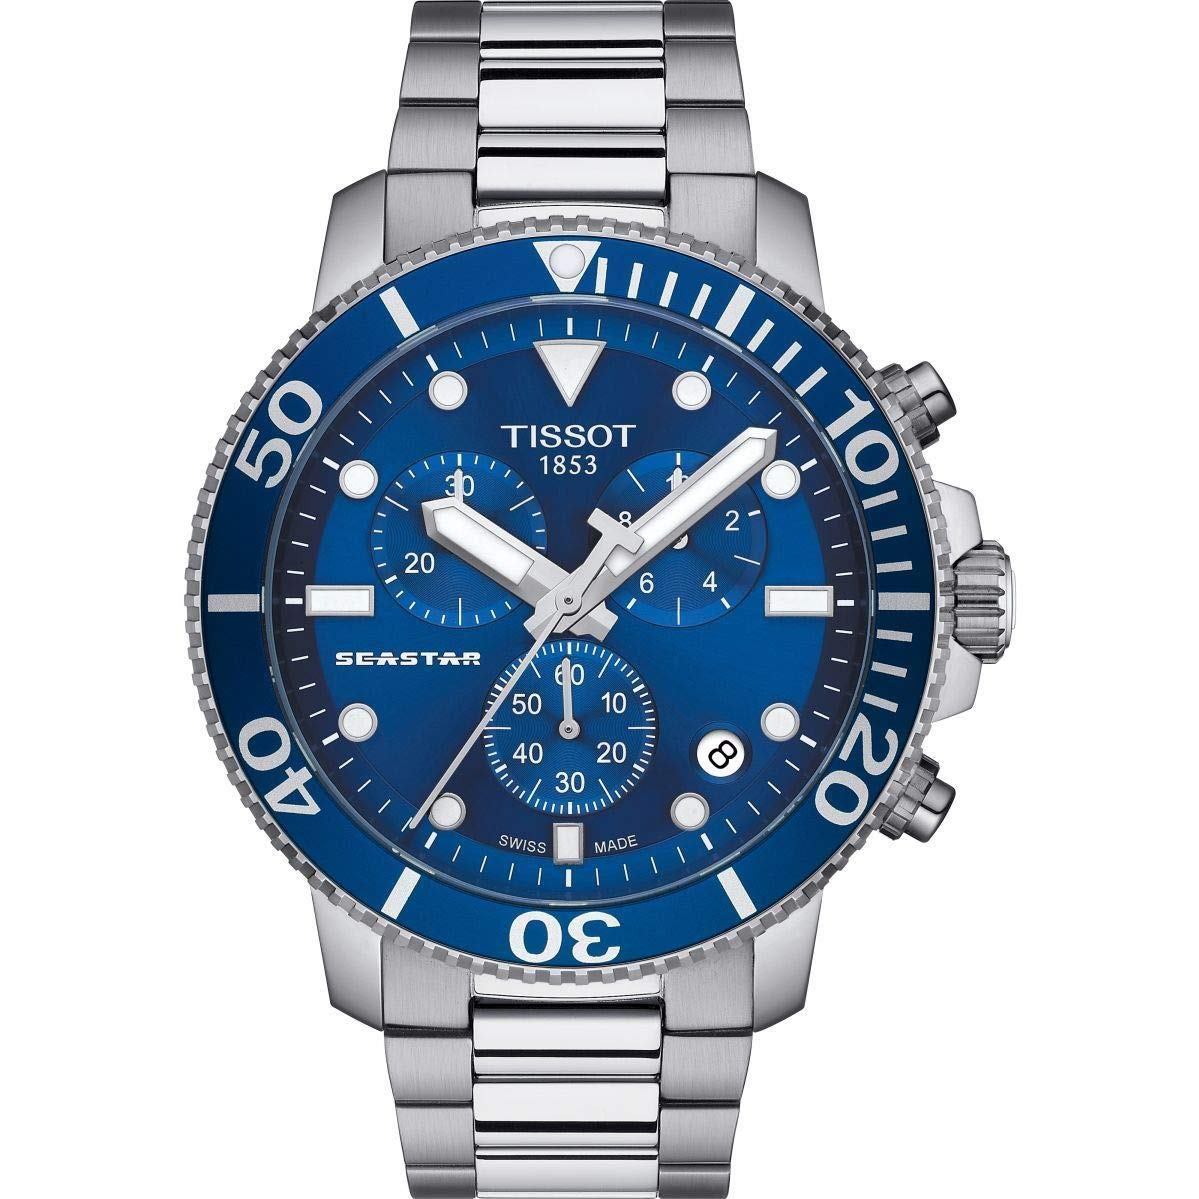 Tissot Expensive Watches Brands in India in 2020